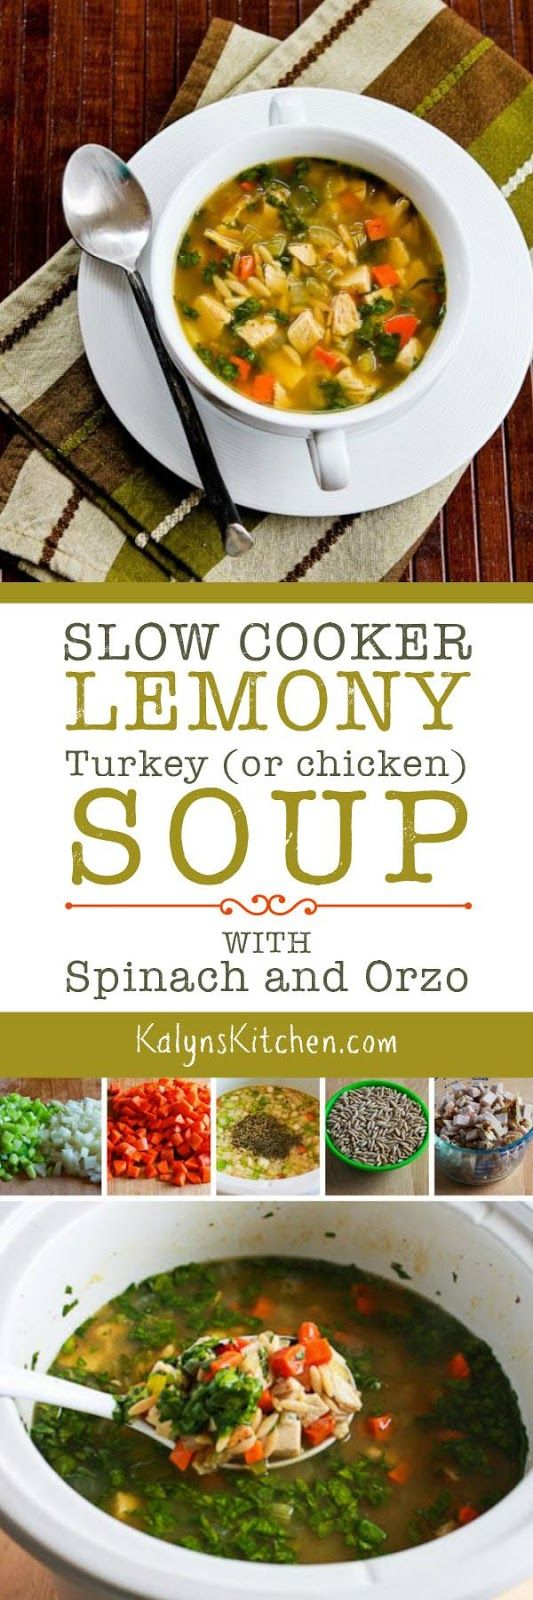 Slow Cooker Lemony Turkey Soup with Spinach and Orzo is an amazing idea for leftover turkey, or make this tasty soup with chicken if you prefer. This recipe is low-glycemic, South Beach Diet friendly, dairy-free, and easy to make, use less orzo or cauilflower rice if you want a soup that's even lower in carbs. [found on KalynsKitchen.com] #SlowCooker #SlowCookerSoup #SlowCookerTurkeySoup #LeftoverTurkey